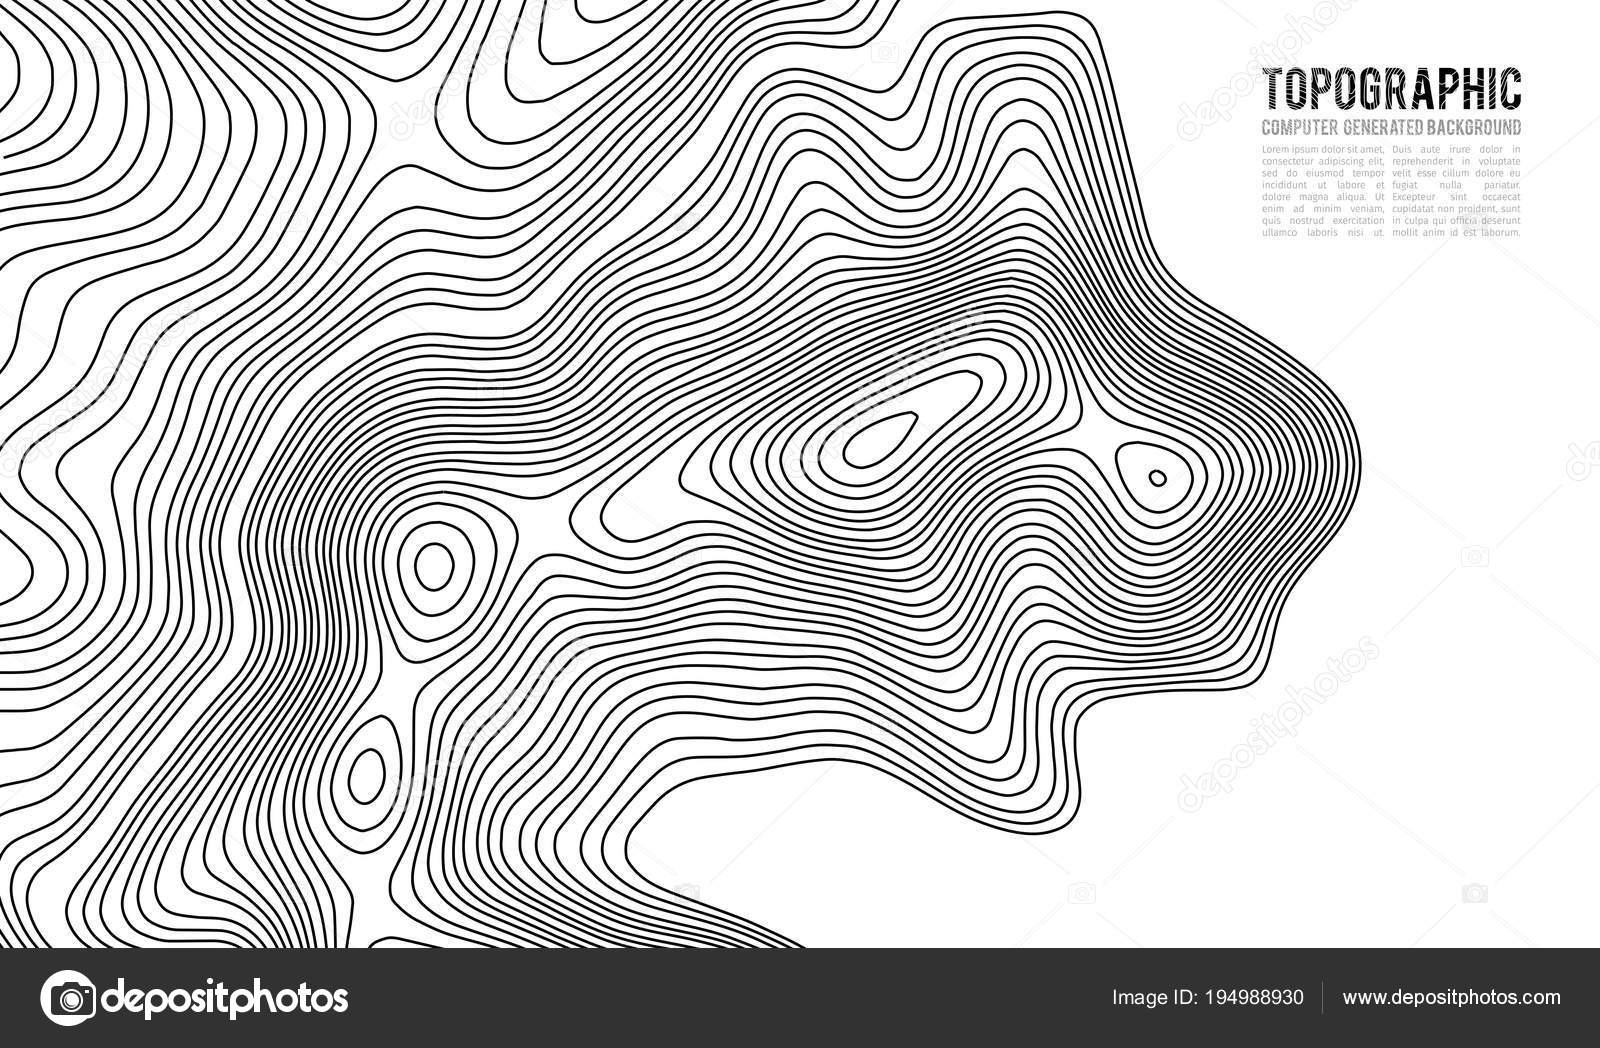 Topographic Map Contour Background Topo Map With